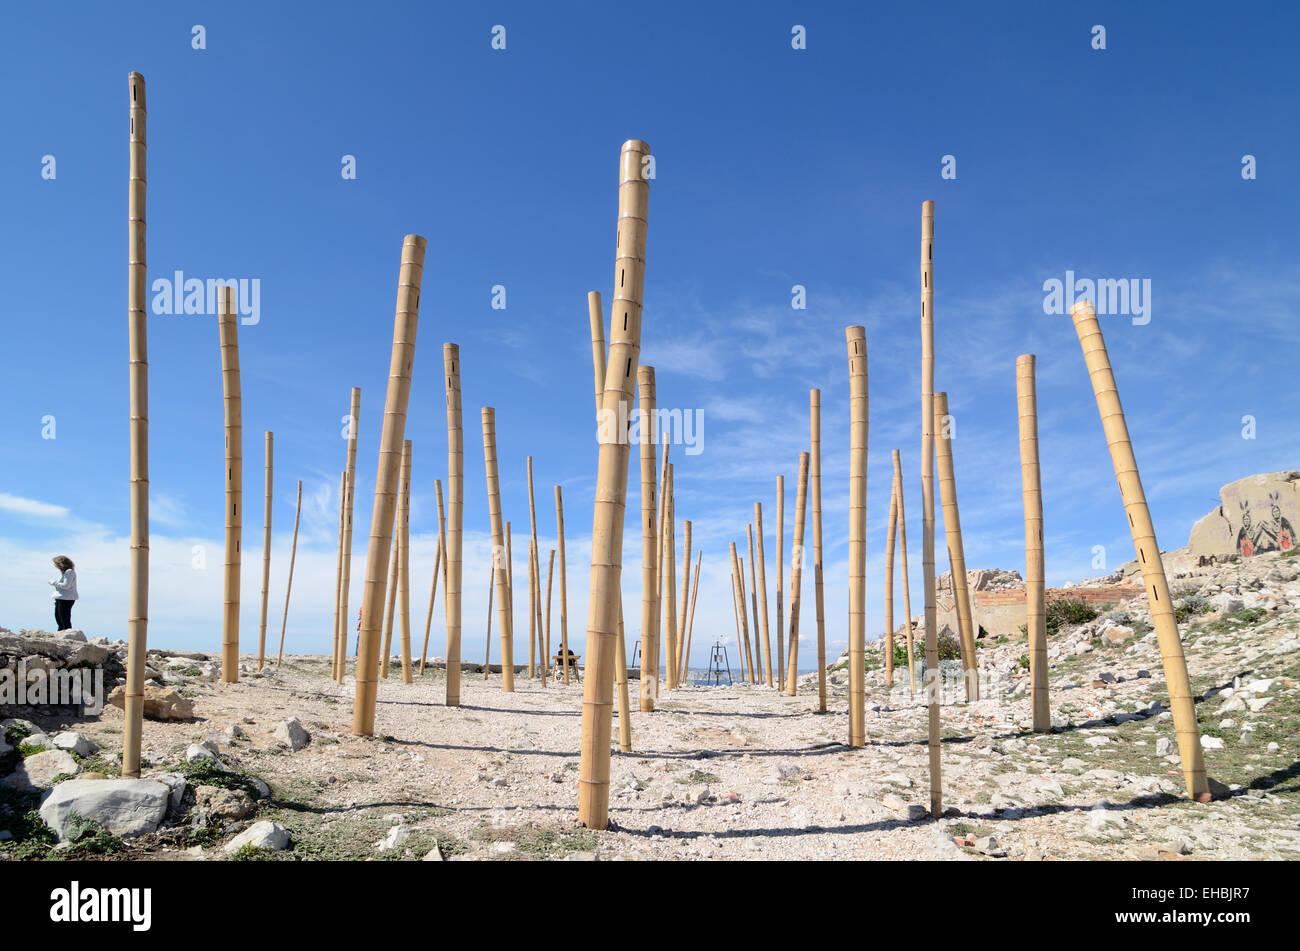 Wind instrument musical bamboo poles or art